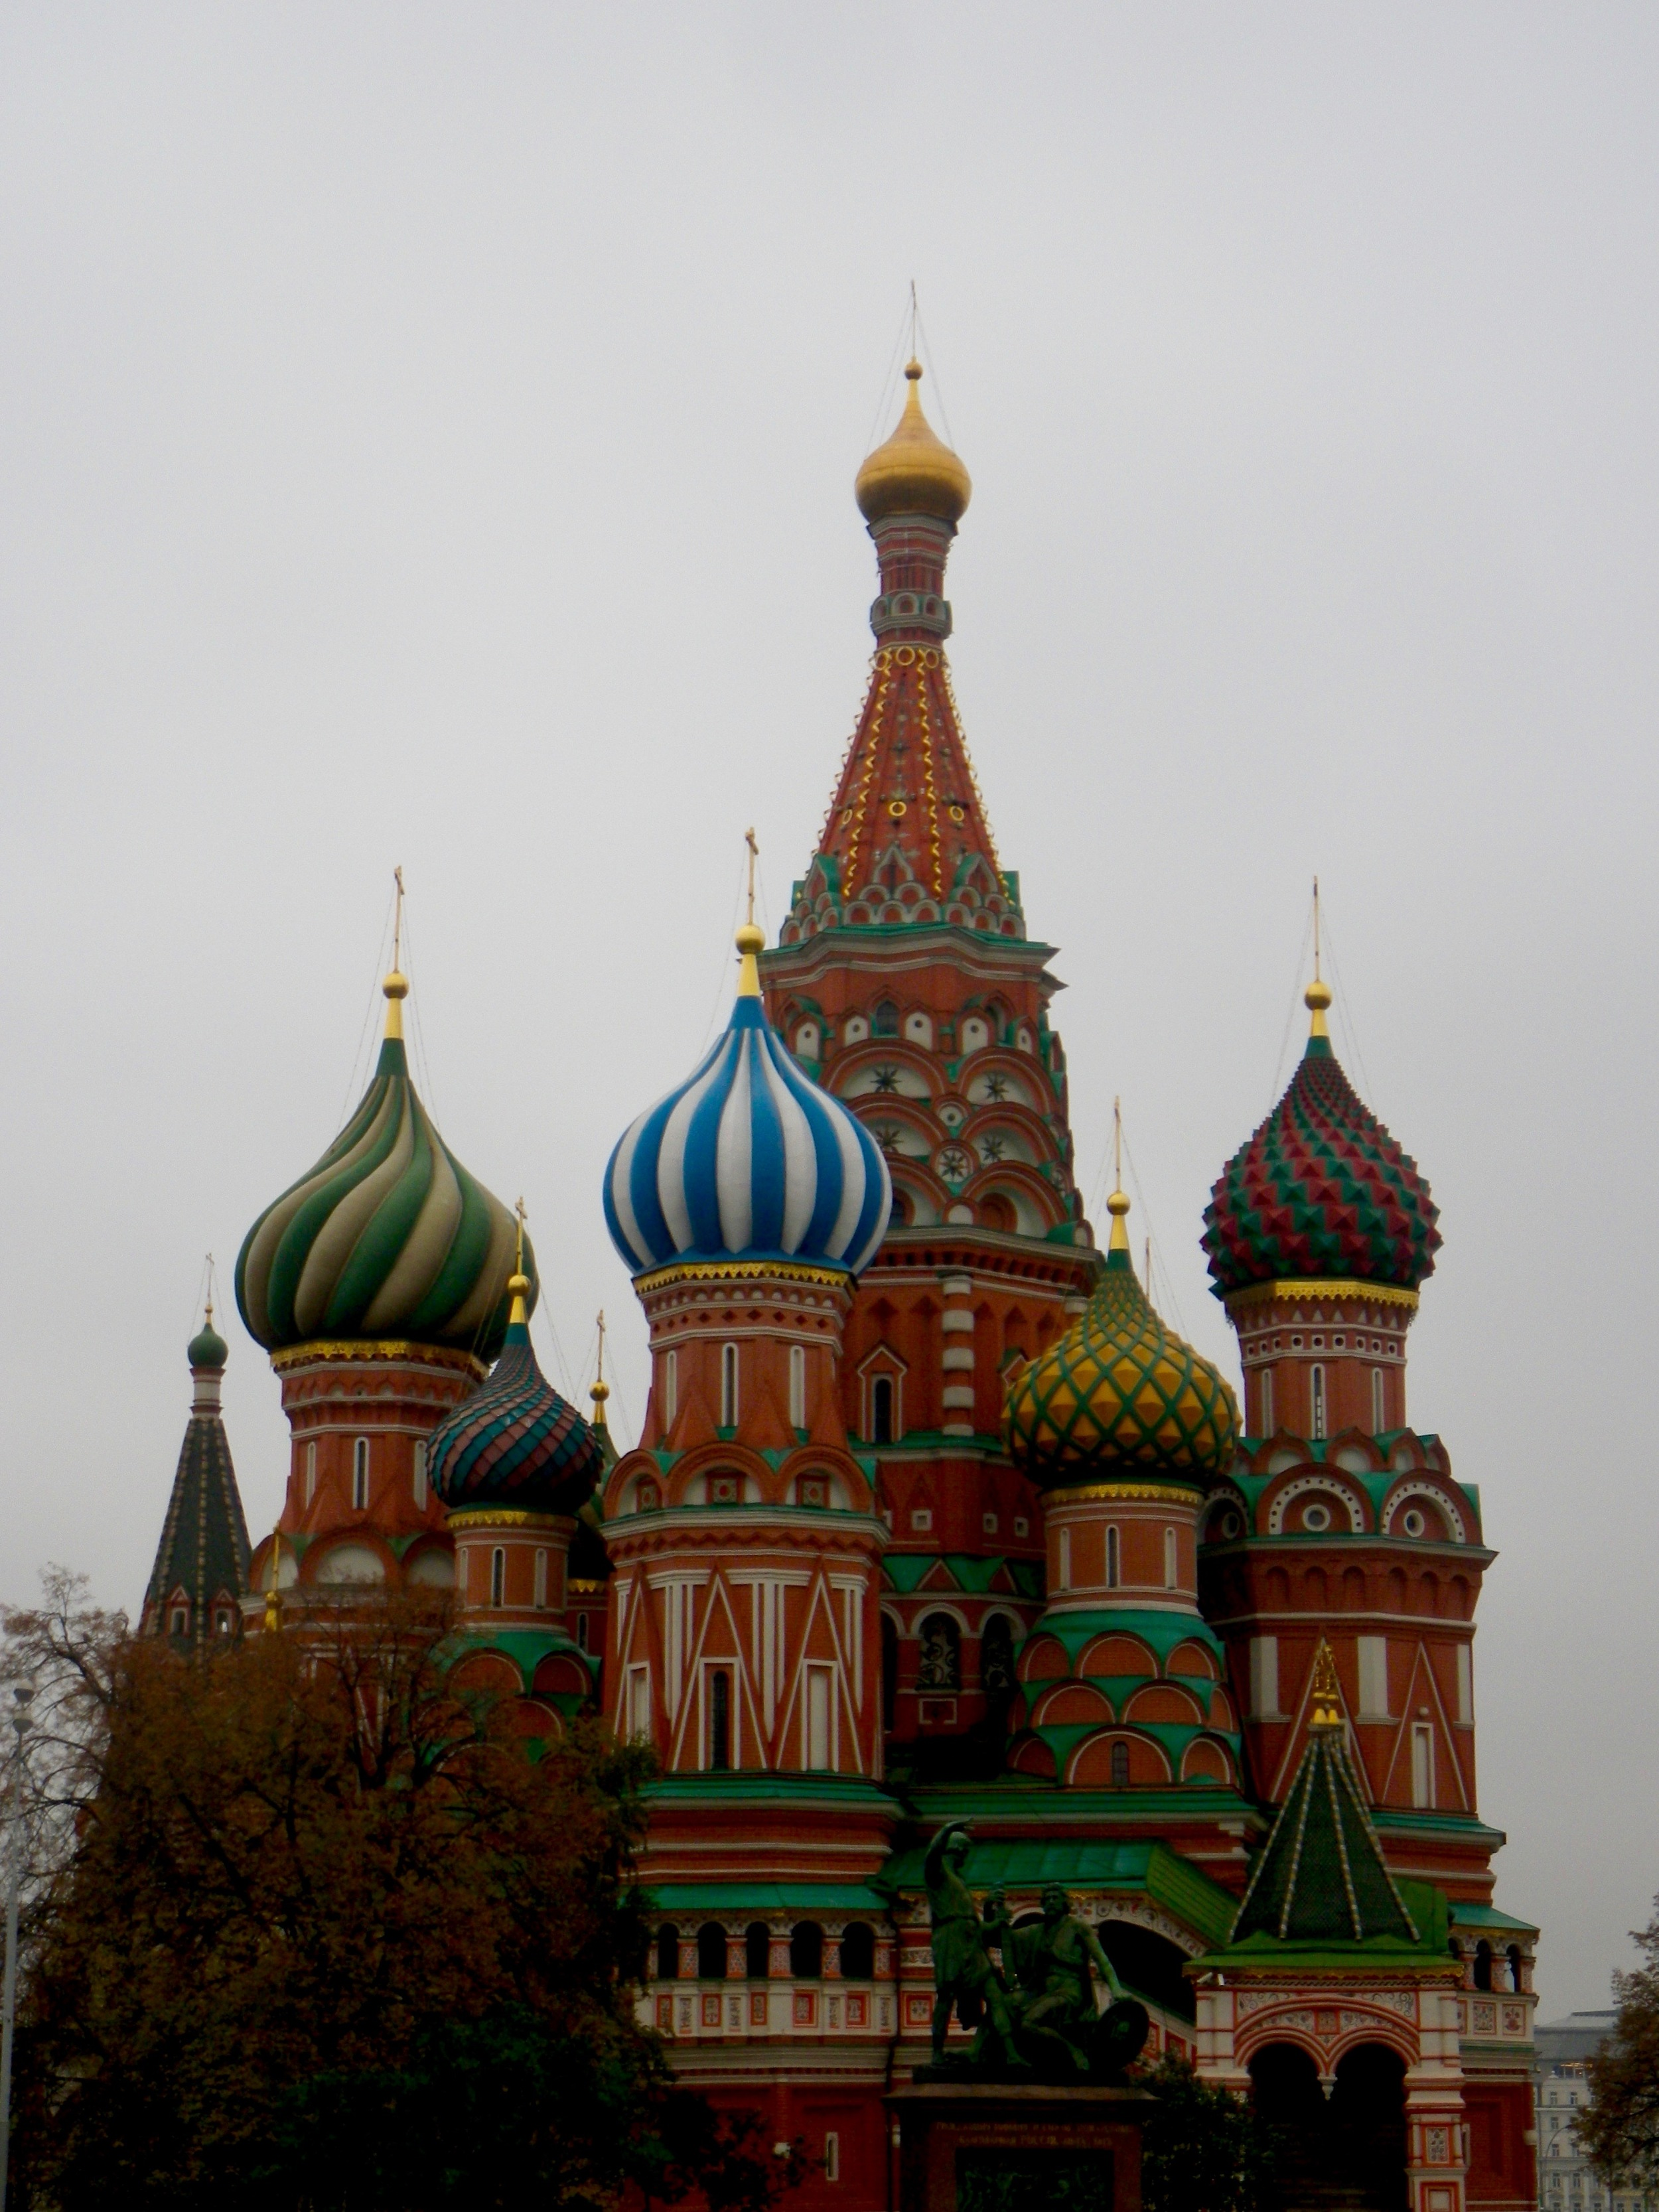 Backpacking in Russia. Budget travel in Russia. Planning the Trans-Siberian Railway.